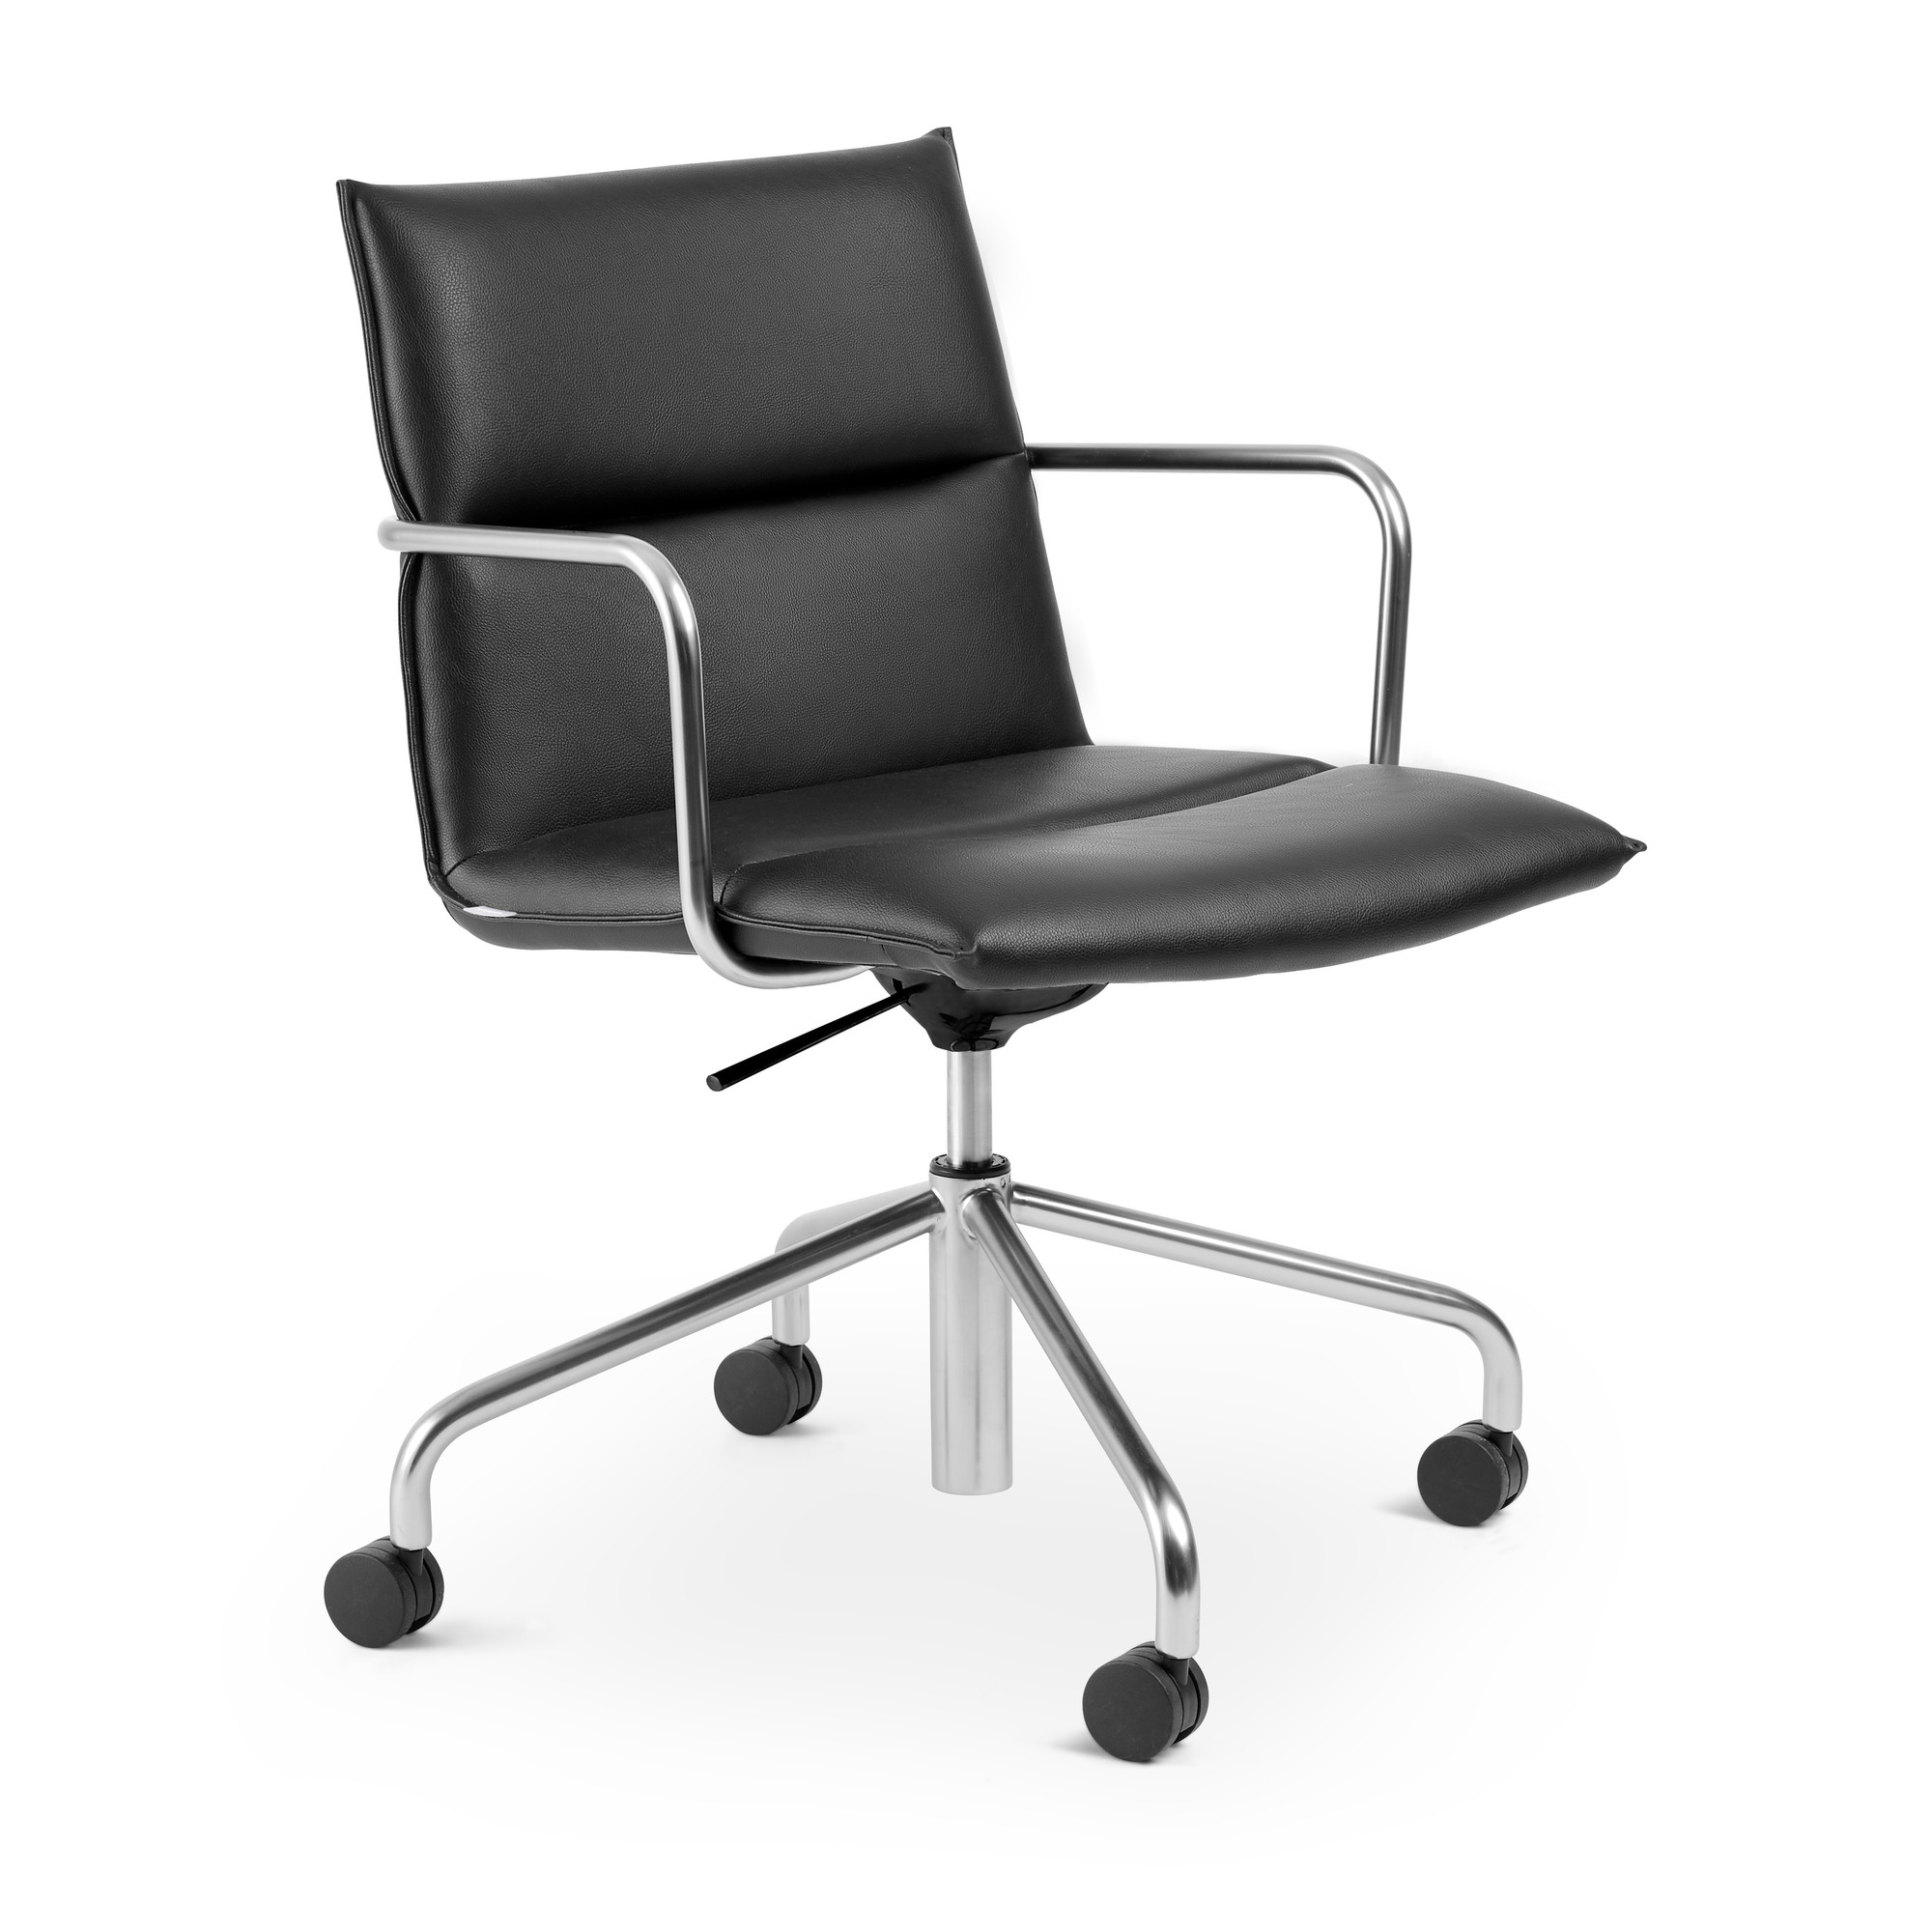 53f09118363 Black Meredith Meeting Chair